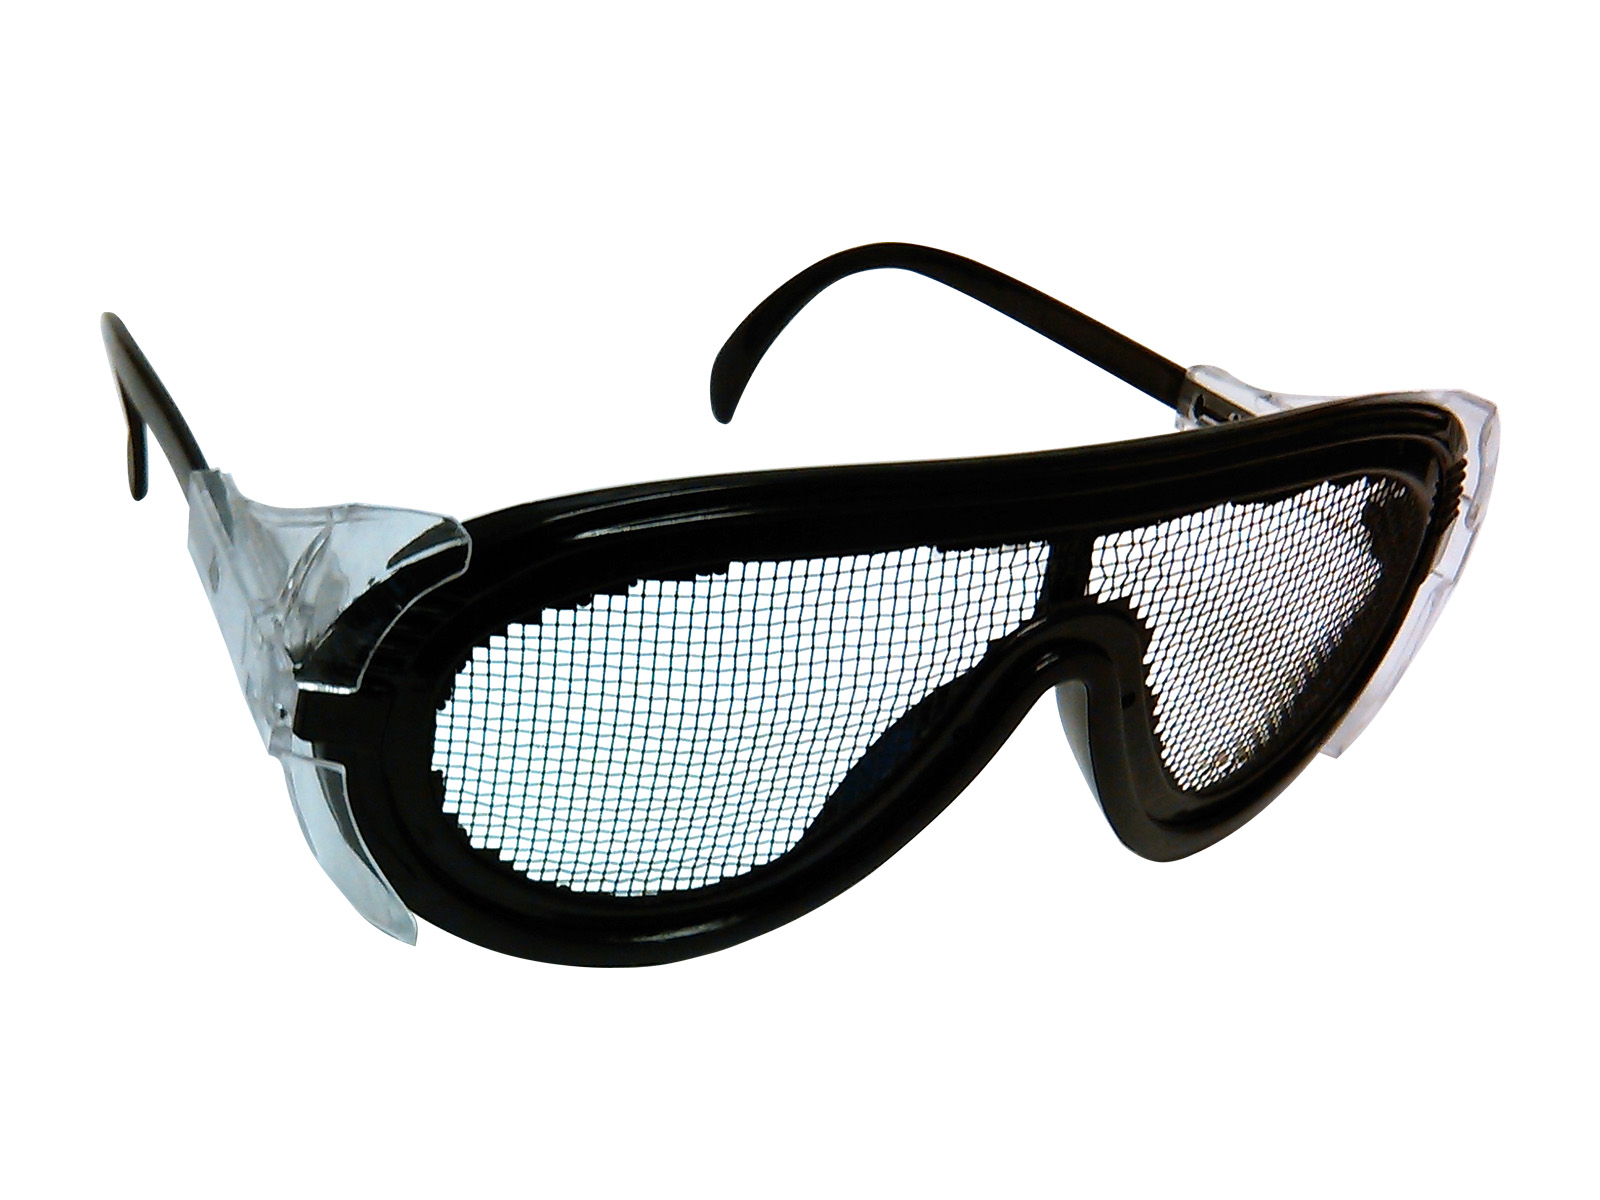 Zenport Safety Glasses G2635 Wire Mesh Adjustable, Scratch and Fog Free, Eye Protection